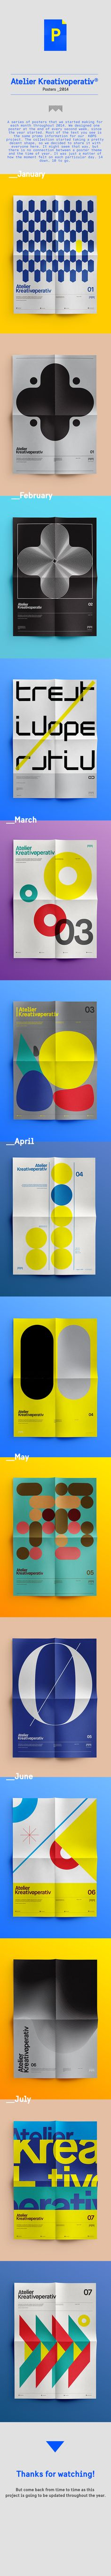 Kreativoperativ® / A Year in Posters. by Marko Vuleta-Djukanov, via Behance